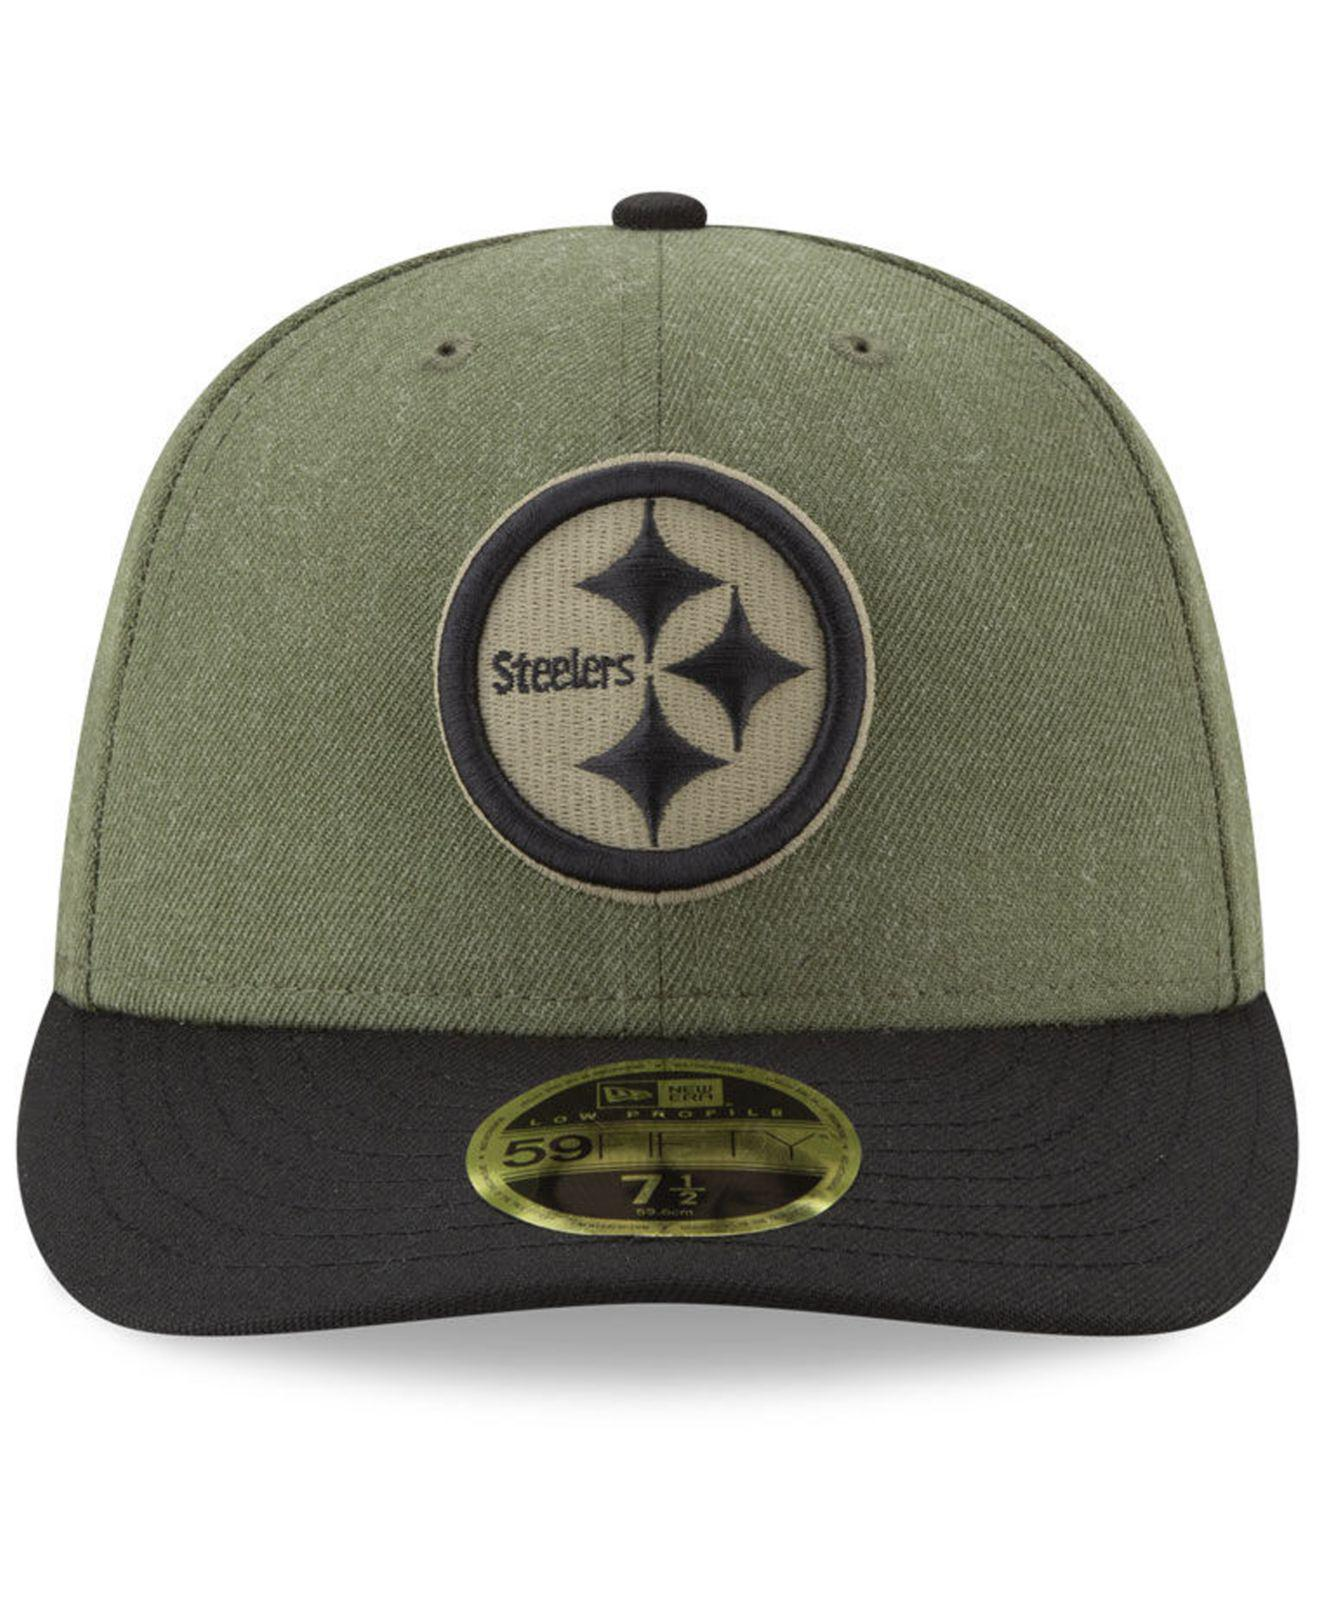 separation shoes a72a4 700eb KTZ Pittsburgh Steelers Salute To Service Low Profile 59fifty Fitted Cap  2018 in Green for Men - Lyst